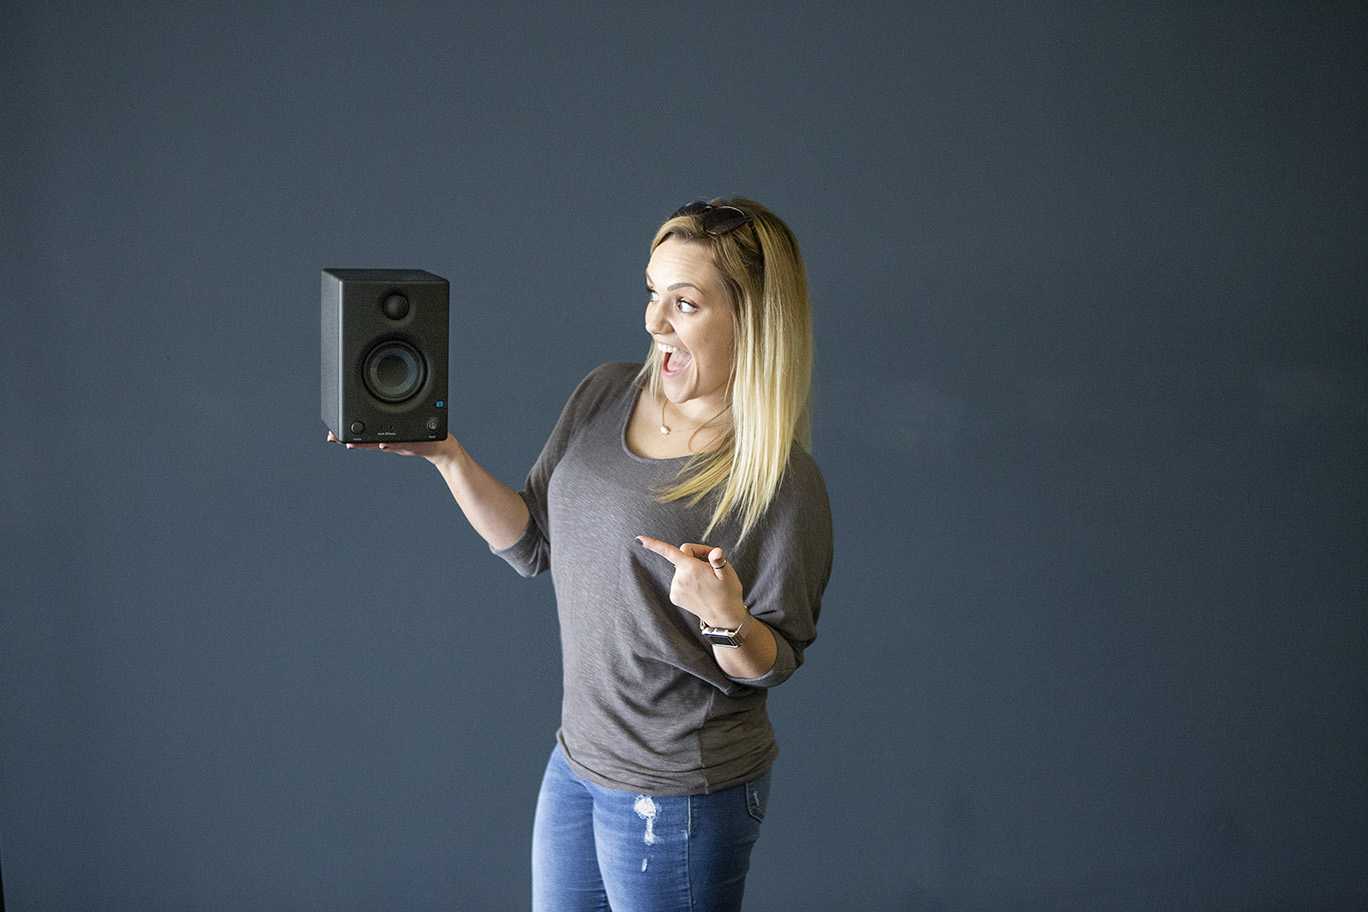 12964f25d09 Here s more on Alex and her favorite PreSonus product the Eris 3.5s!